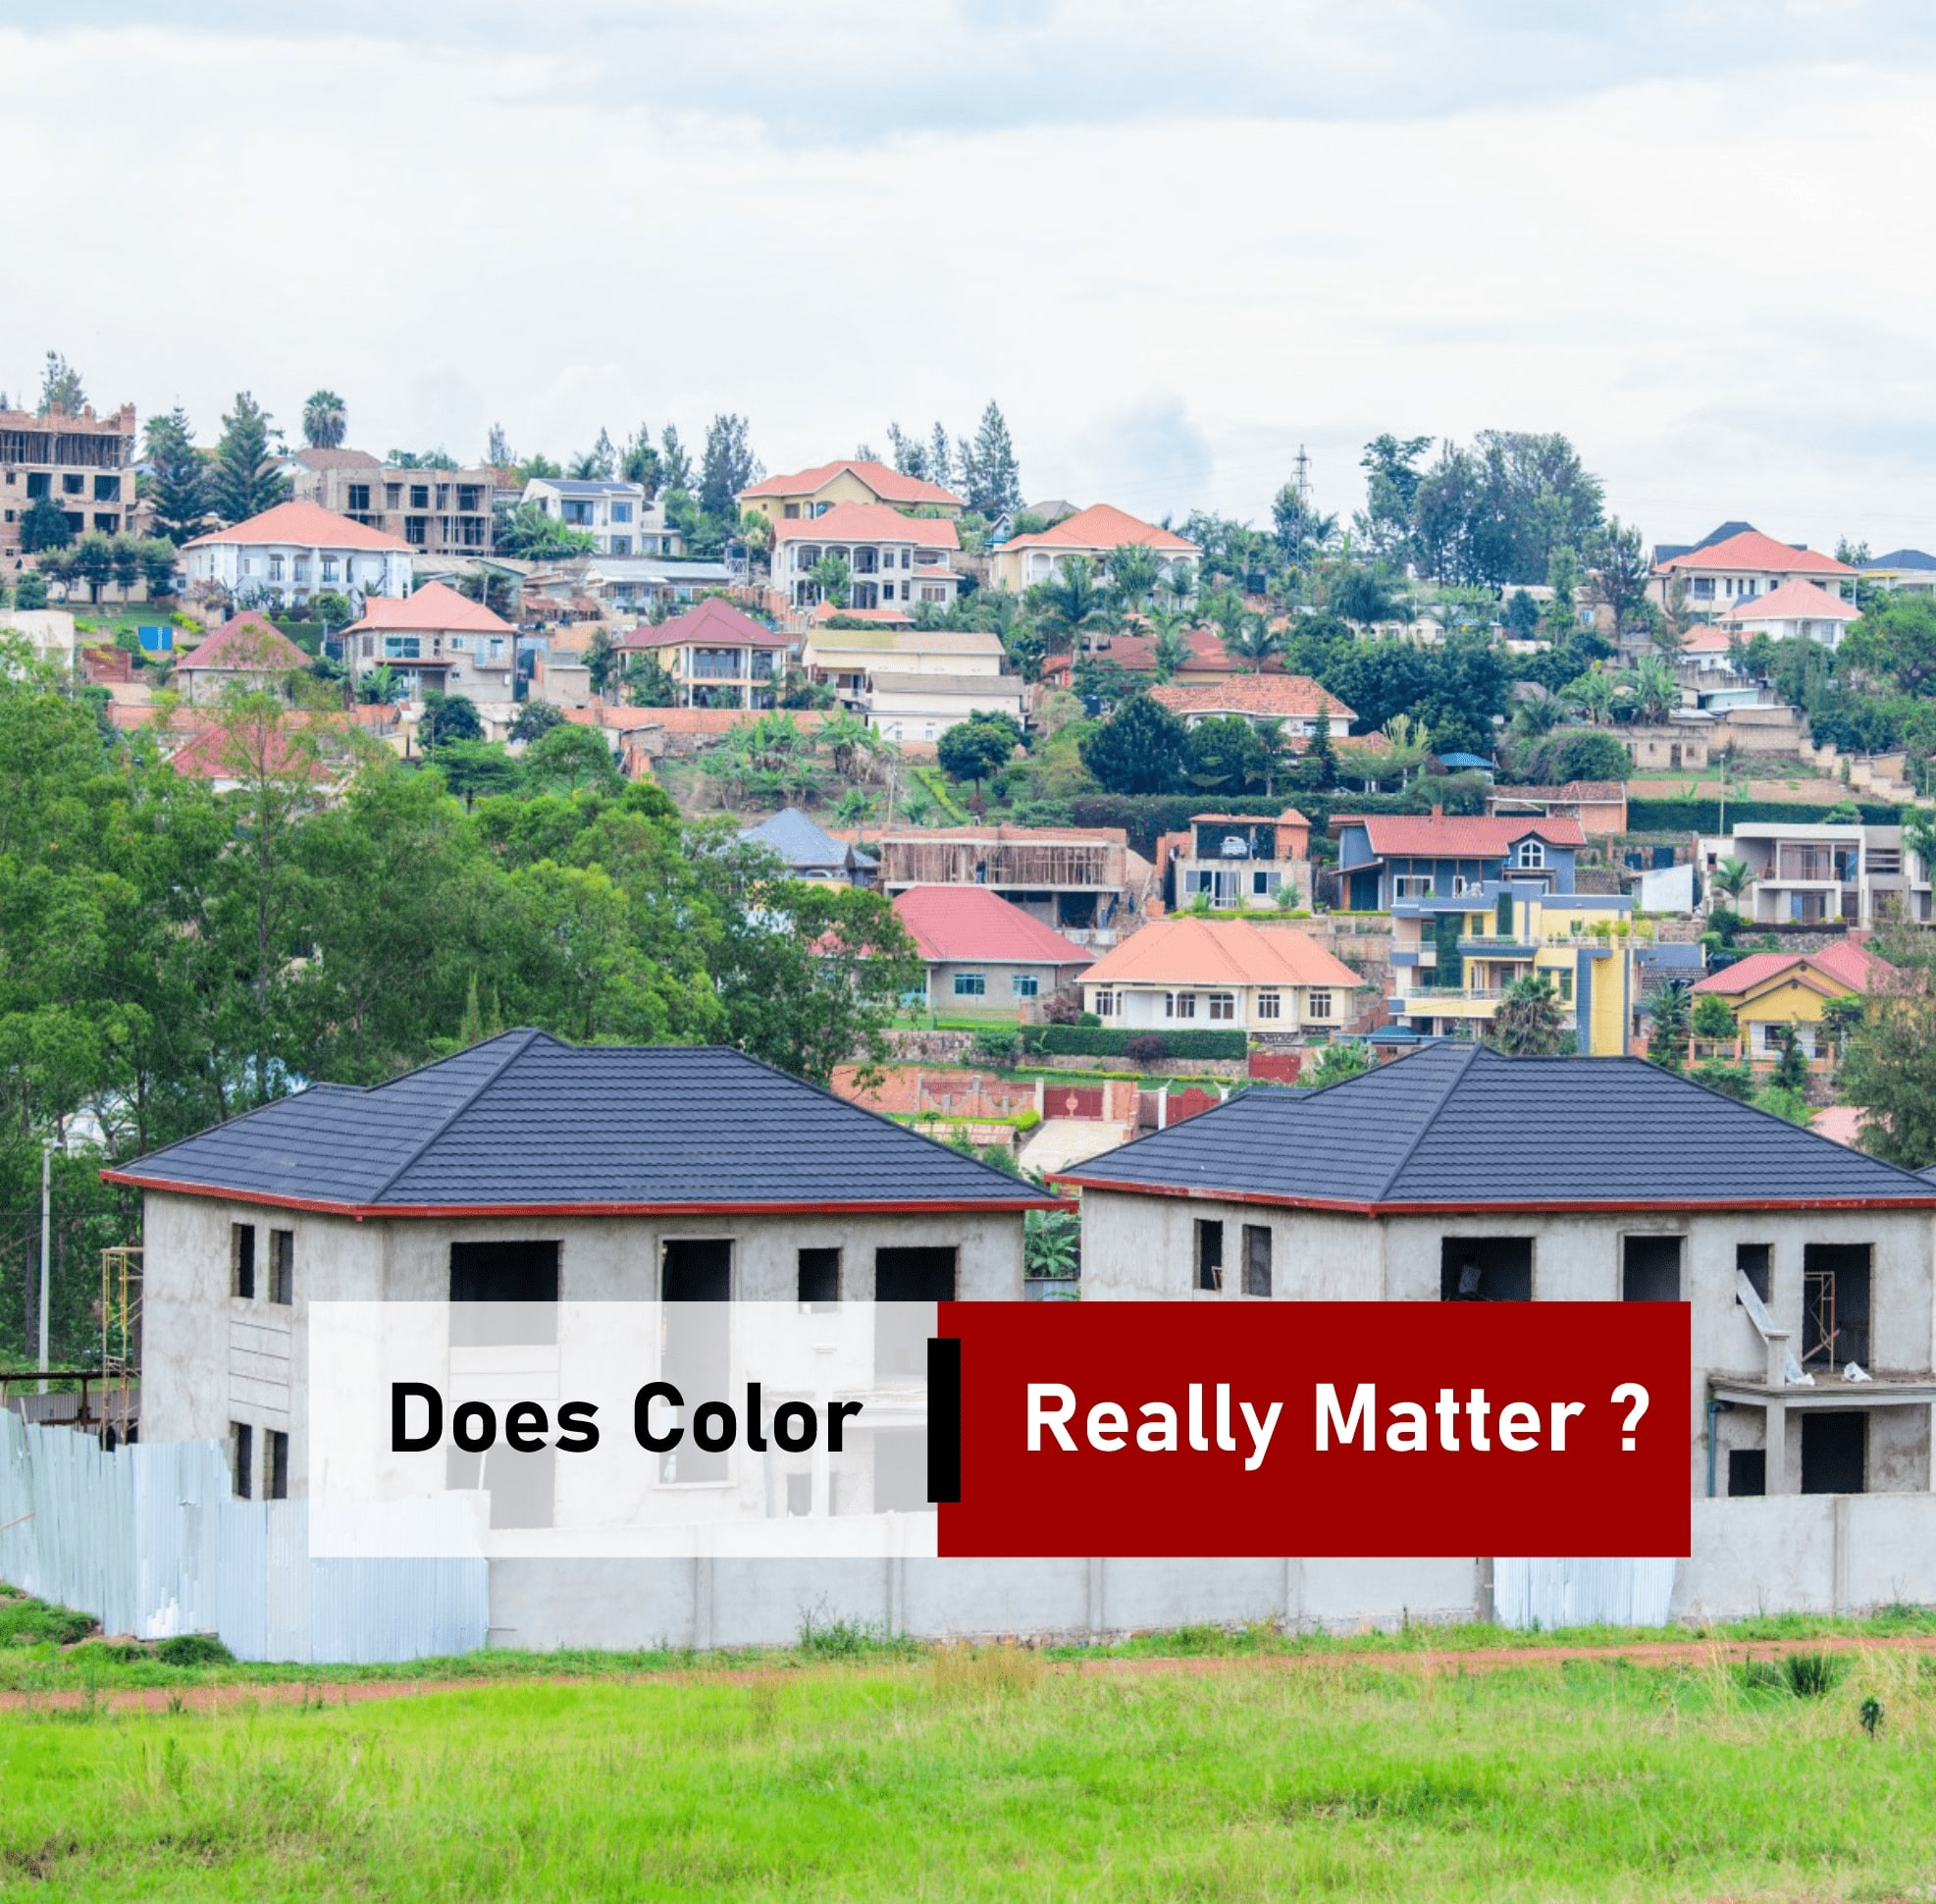 DOES THE COLOR OF YOUR ROOF MATTER?